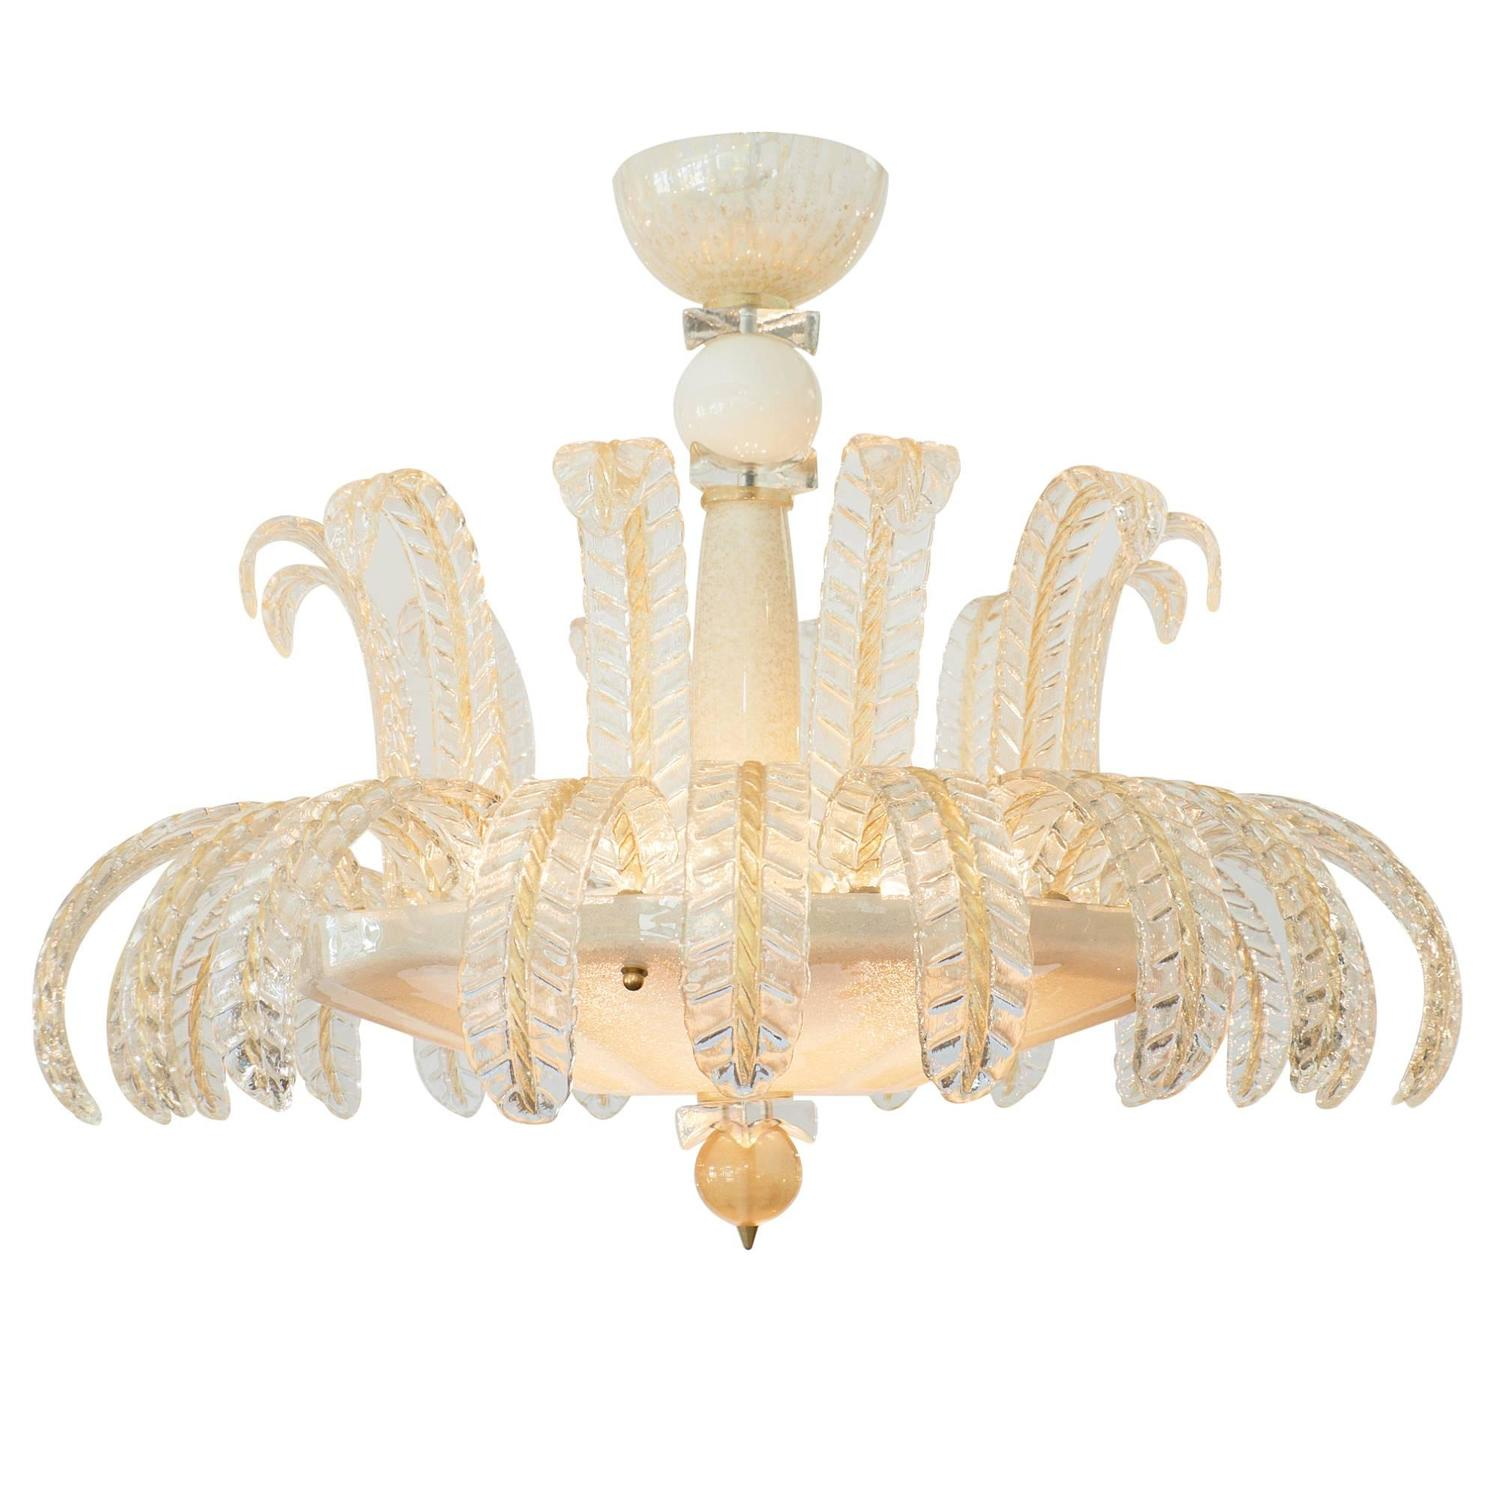 Art Deco Vintage Murano Glass Ballroom Chandelier at 1stdibs